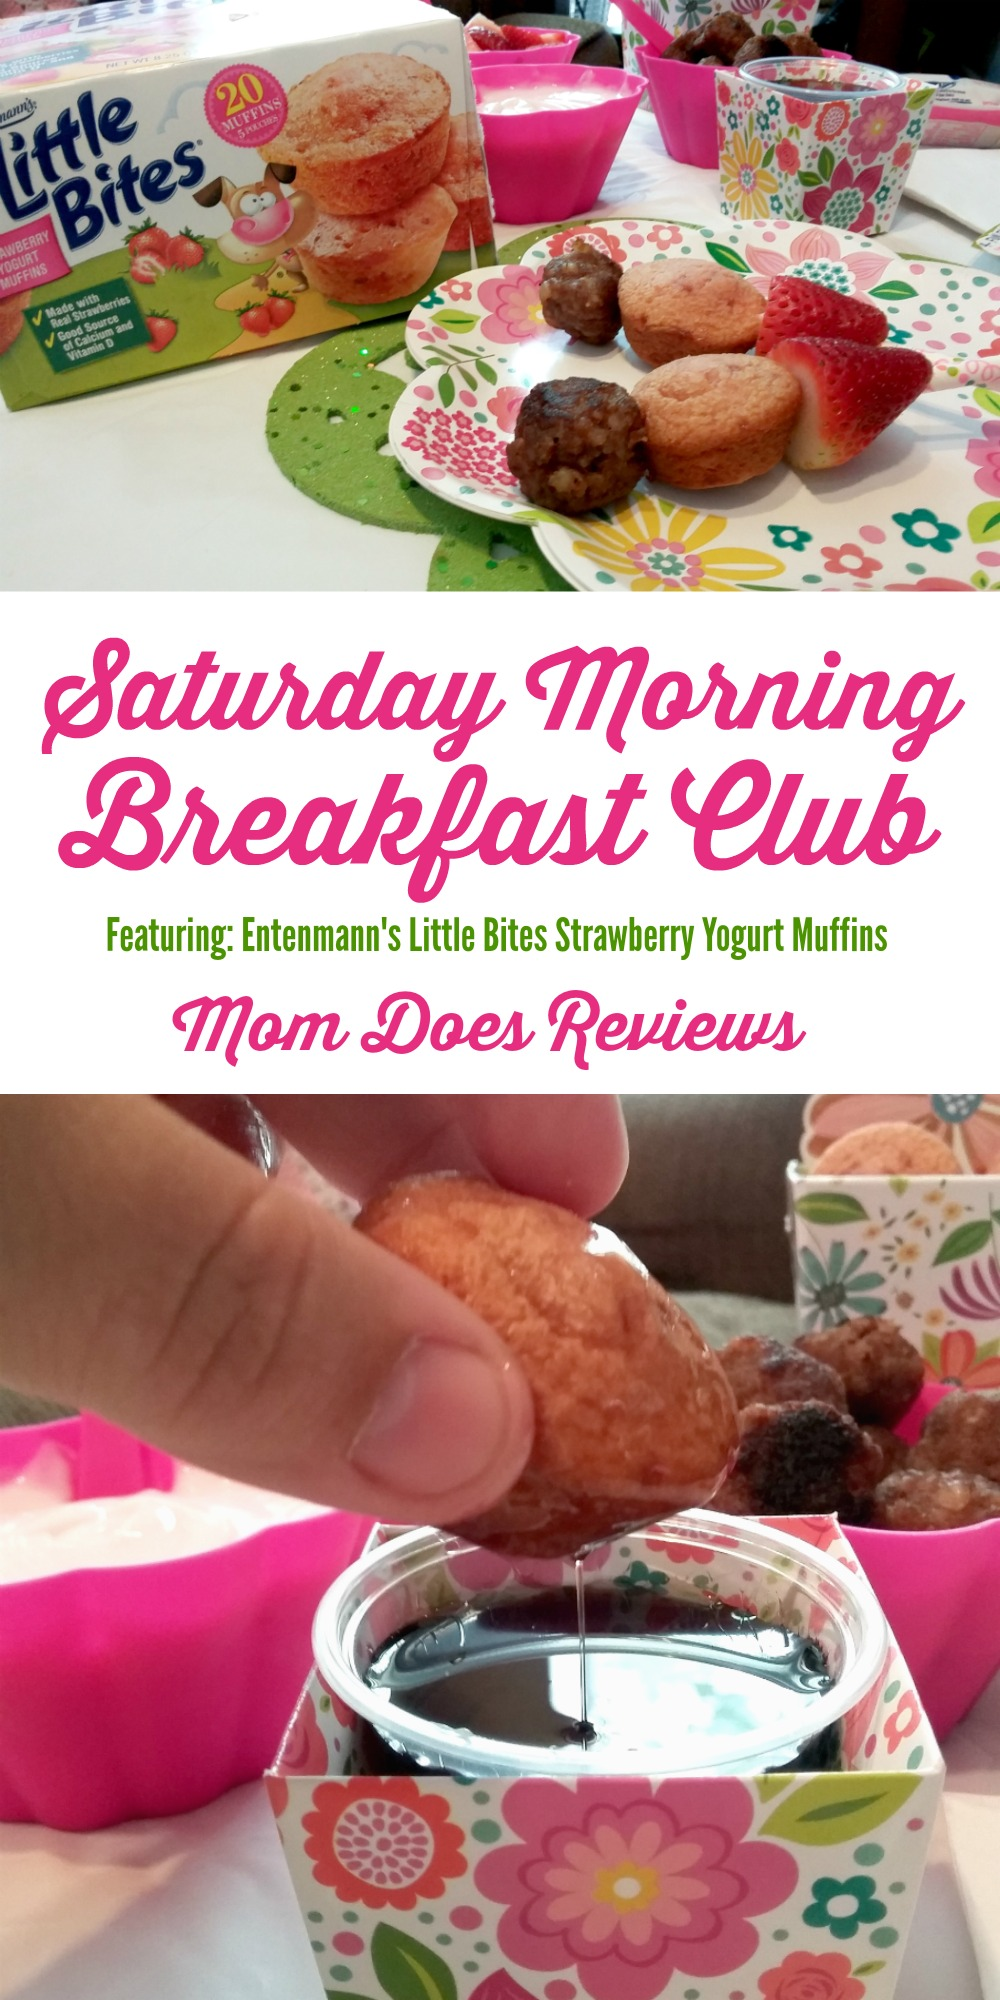 Saturday Morning Breakfast Club